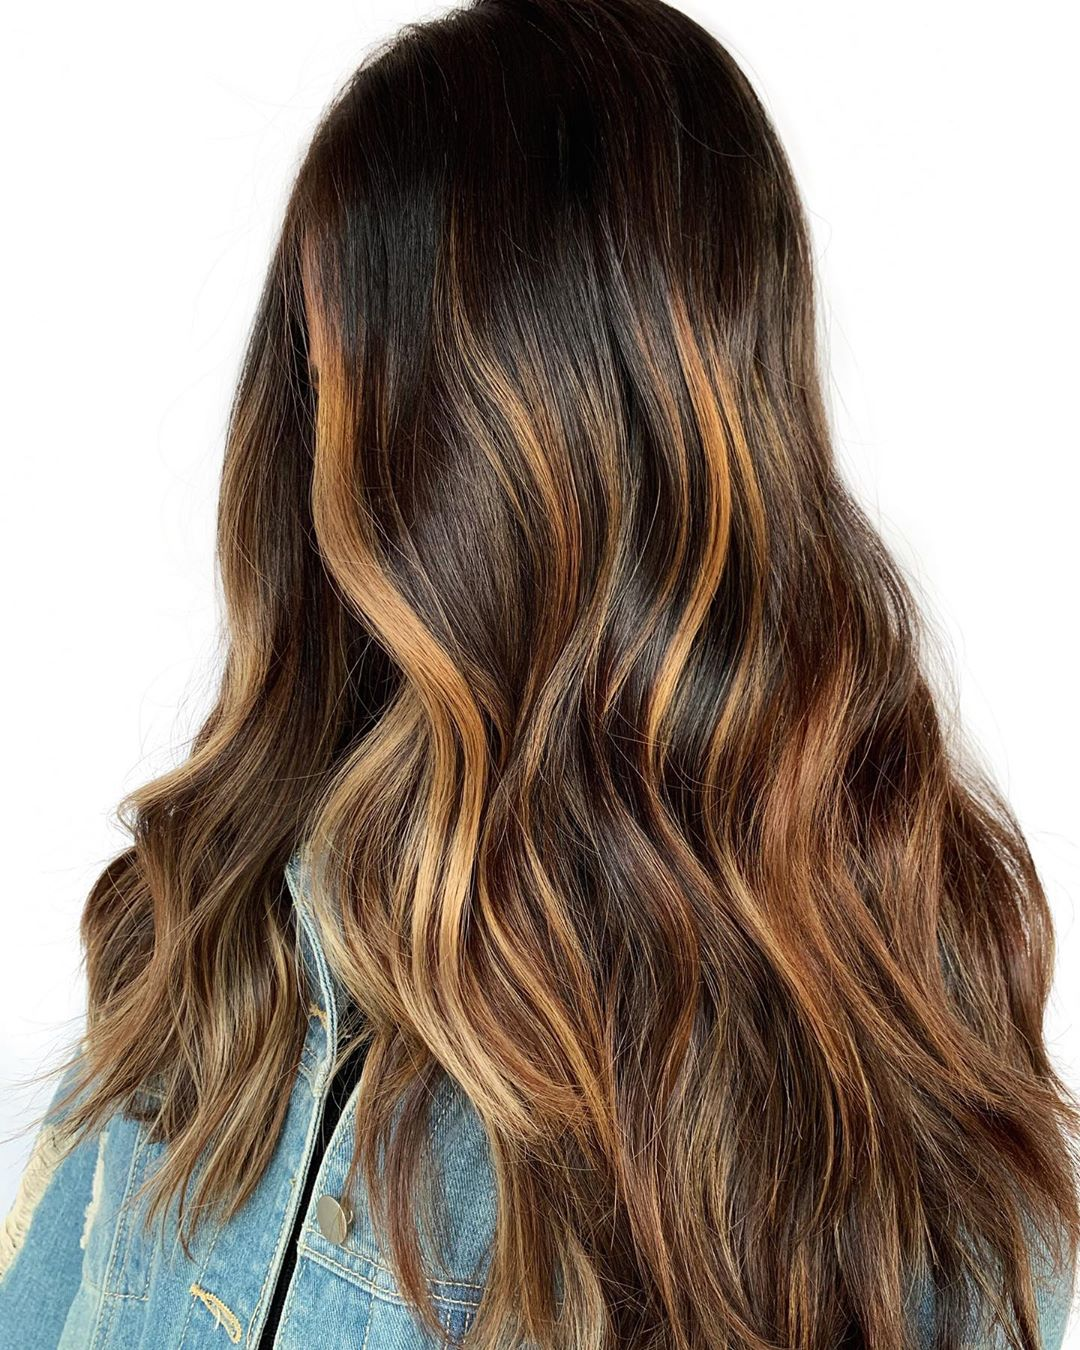 Caramel Balayage Highlights for Dark Hair